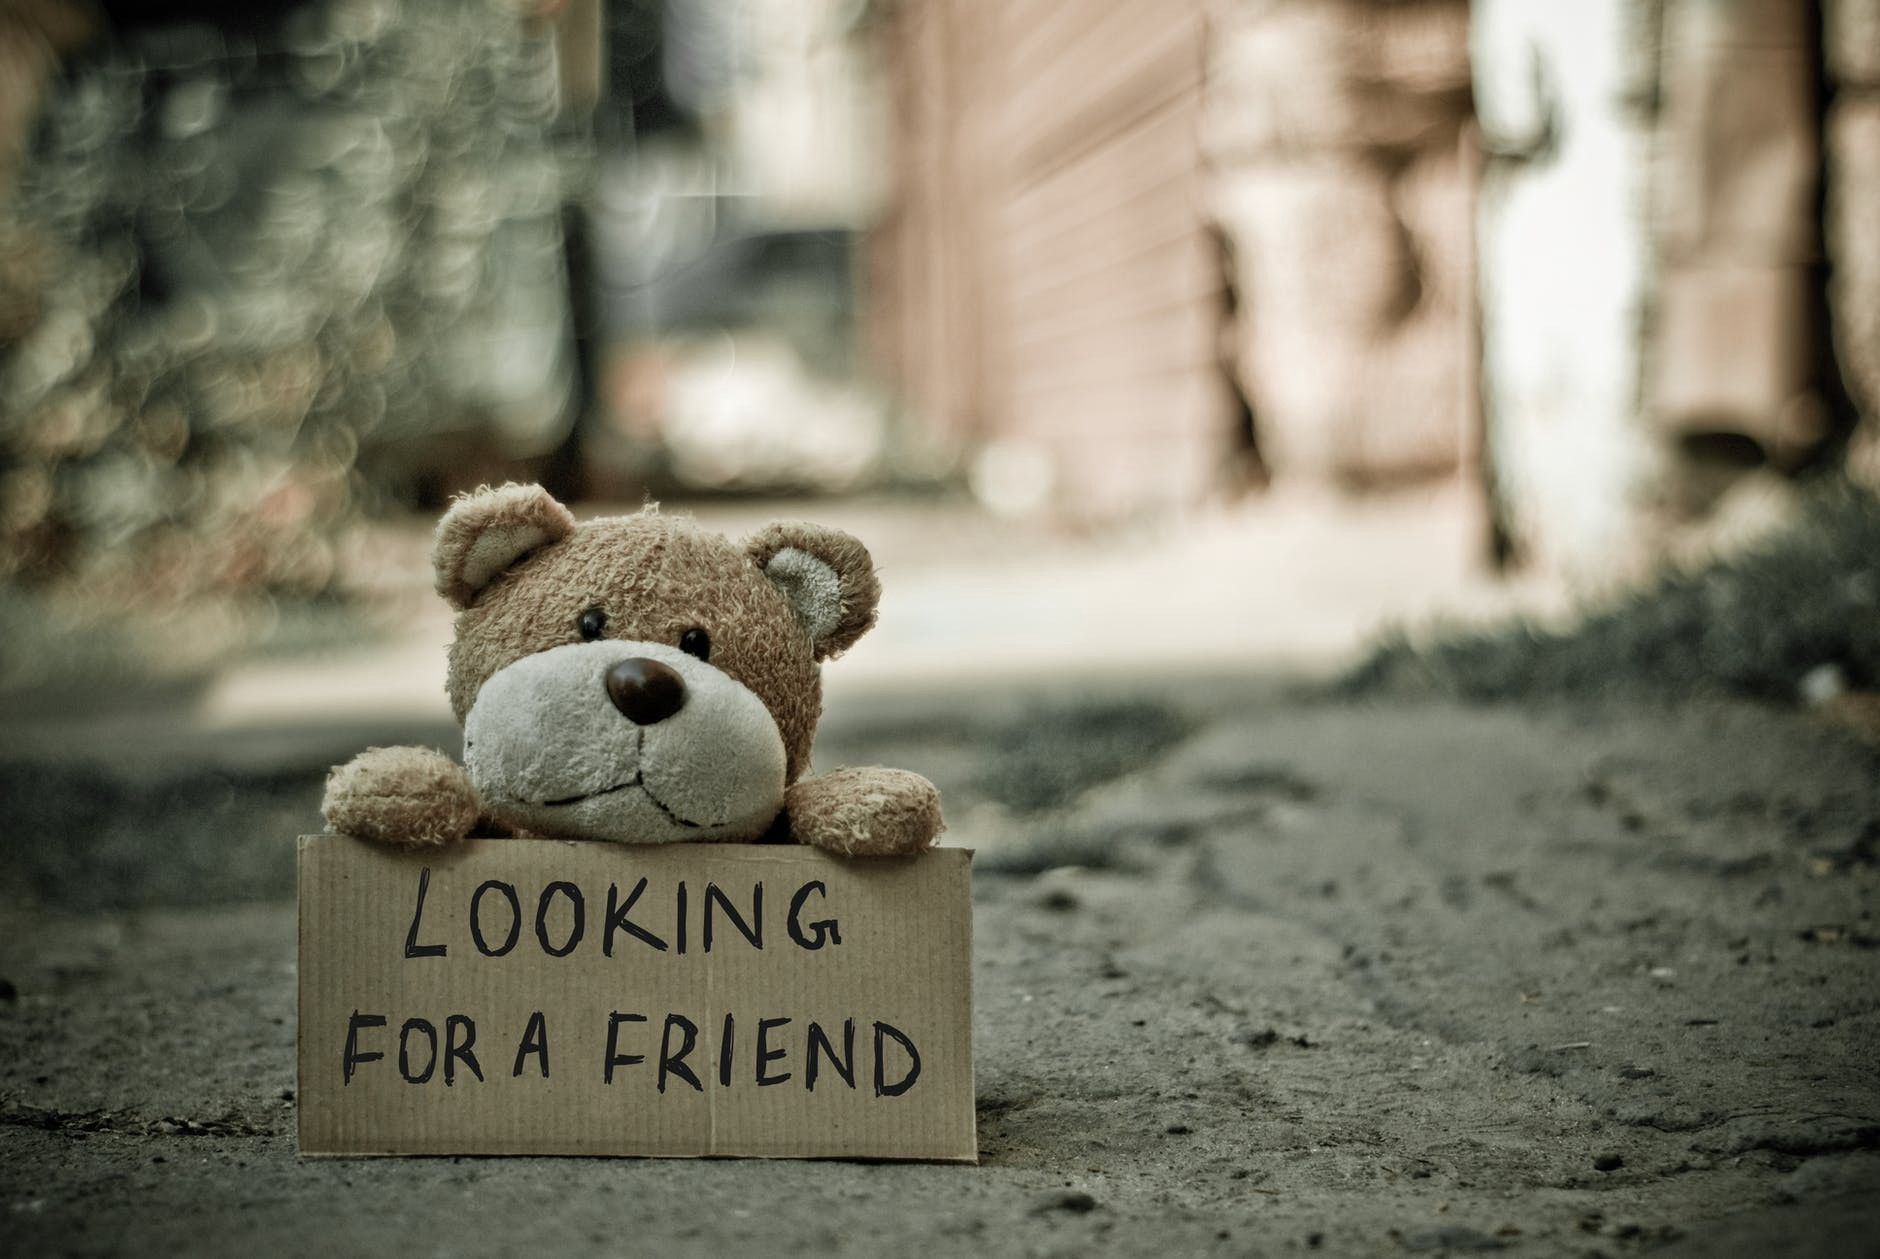 """A cute teddy bear holding a sign that says: """"Looking for a friend."""""""